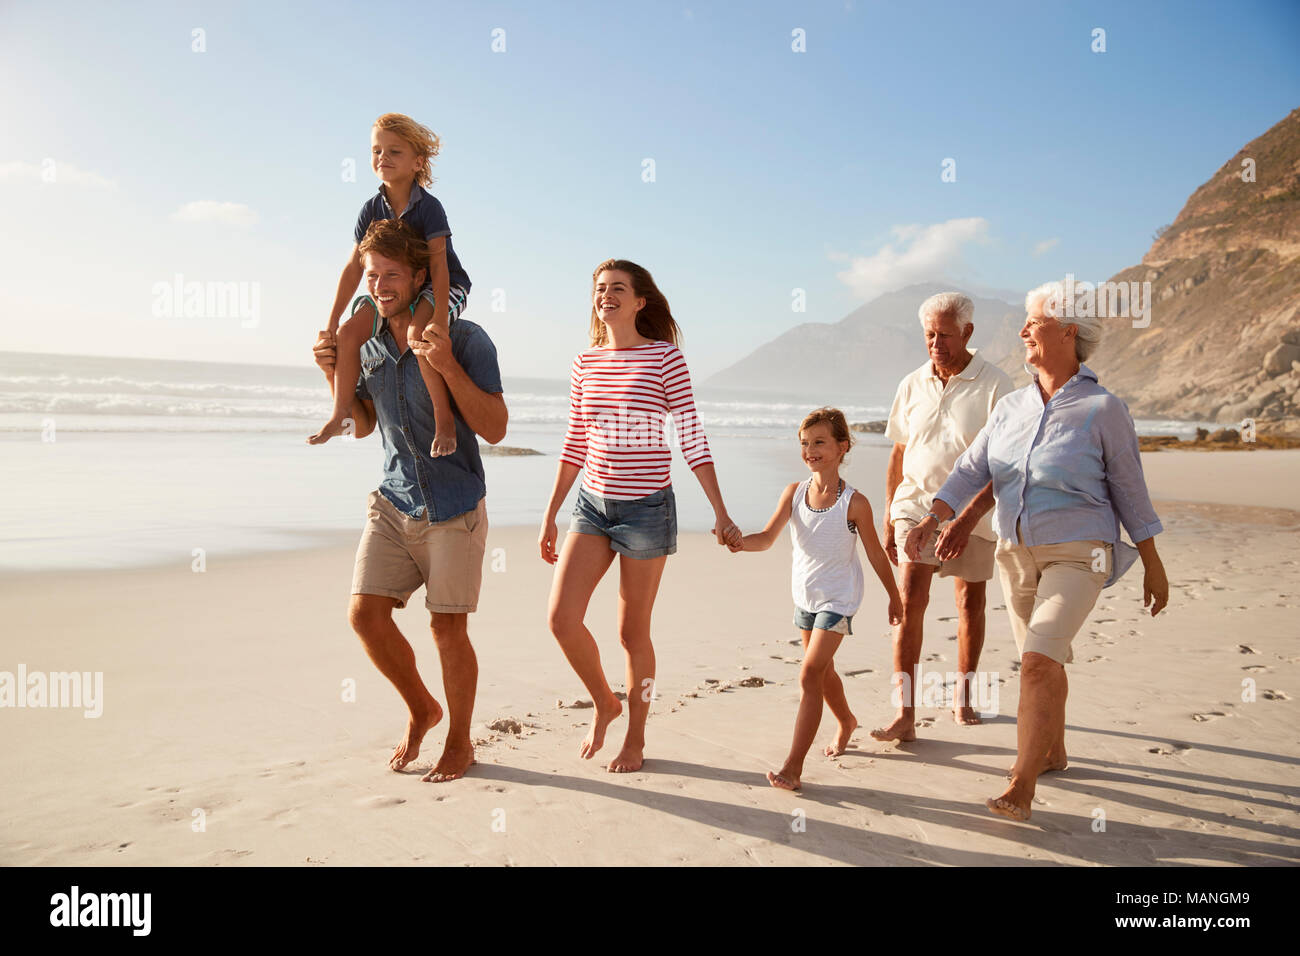 Multi Generation Family On Vacation Walking Along Beach Together - Stock Image